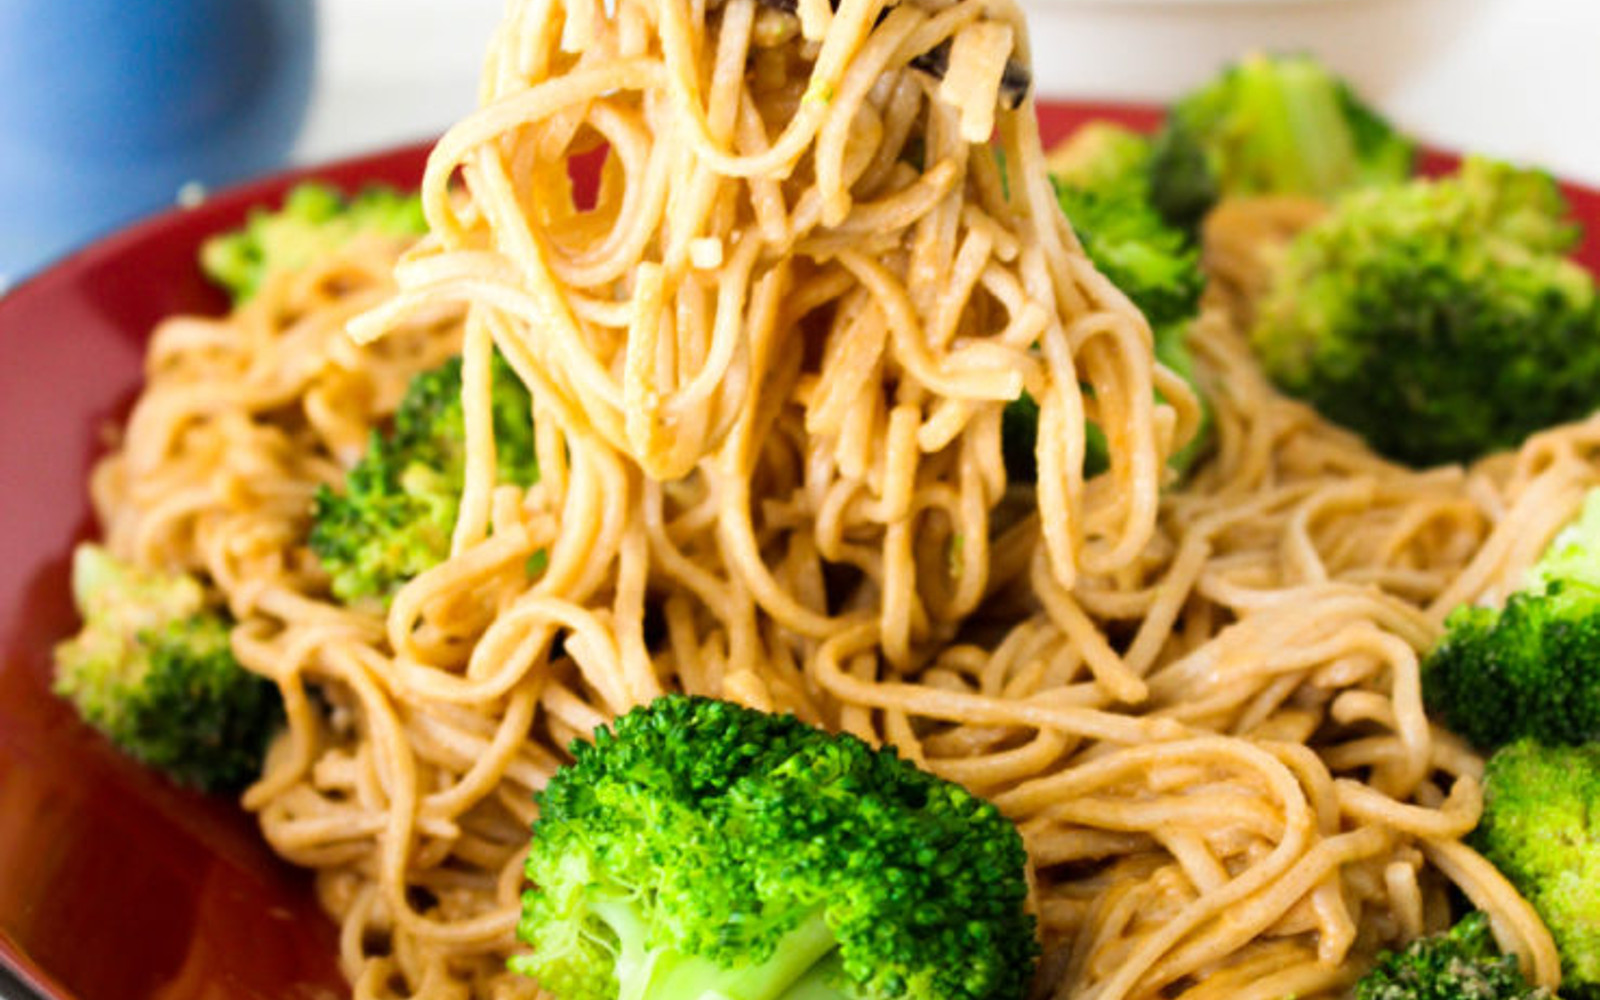 Vegan Peanut Butter Soba Noodles with broccoli